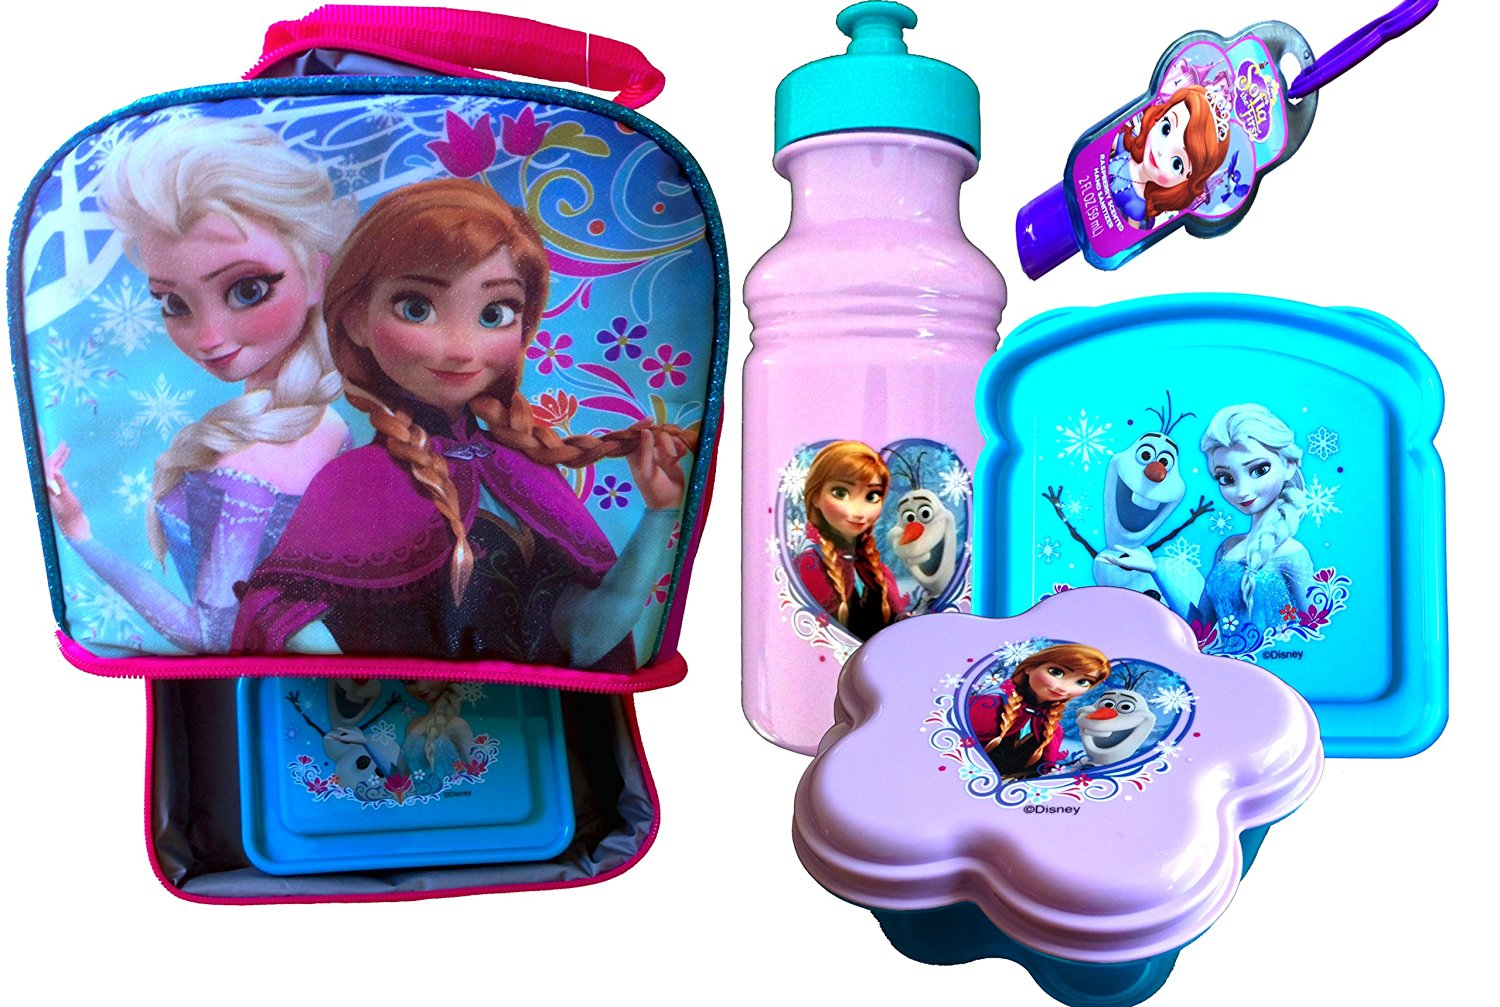 Disney Frozen Standing Lunch Box with Handle Includes 3 Piece Lunch Set , Pull-top Water Bottle, Snack Container , Sandwich Container and Bonus Sofia the First Hand Sanitizer (LUNCH BOX AND 3 PIECE LUNCH SET)